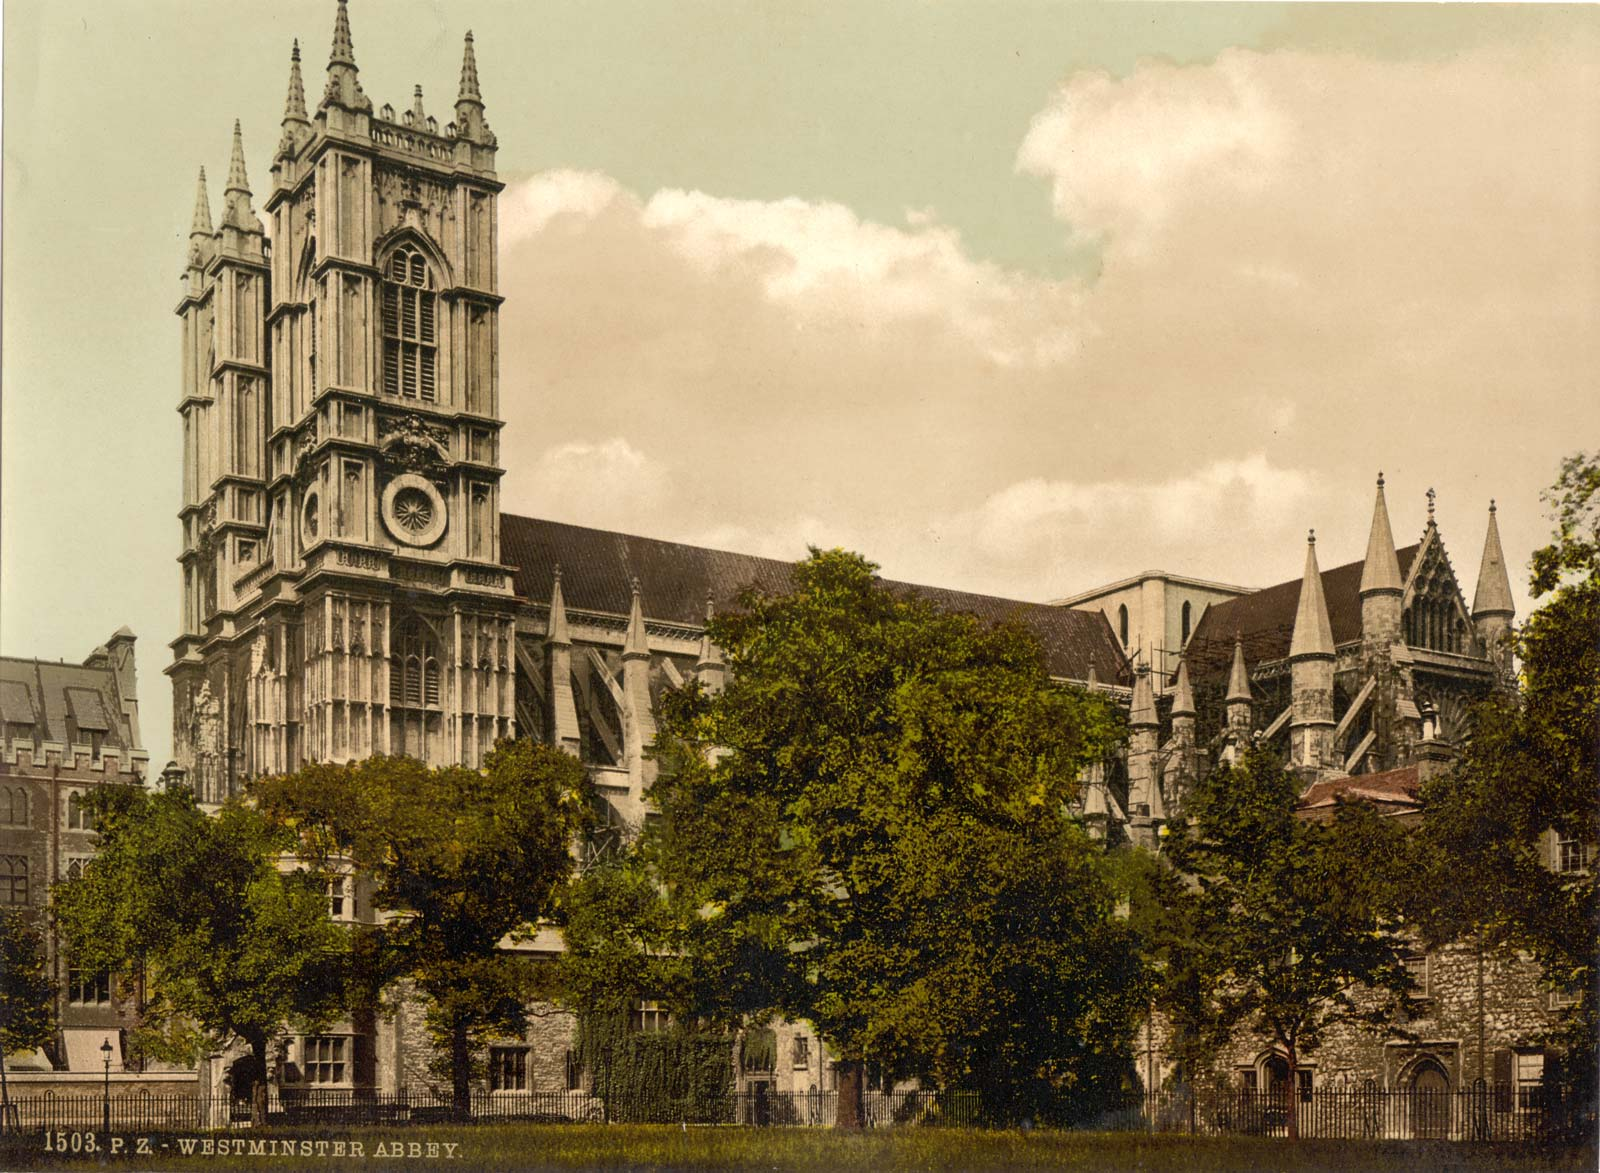 Suffragettes bomb Westminster Abbey